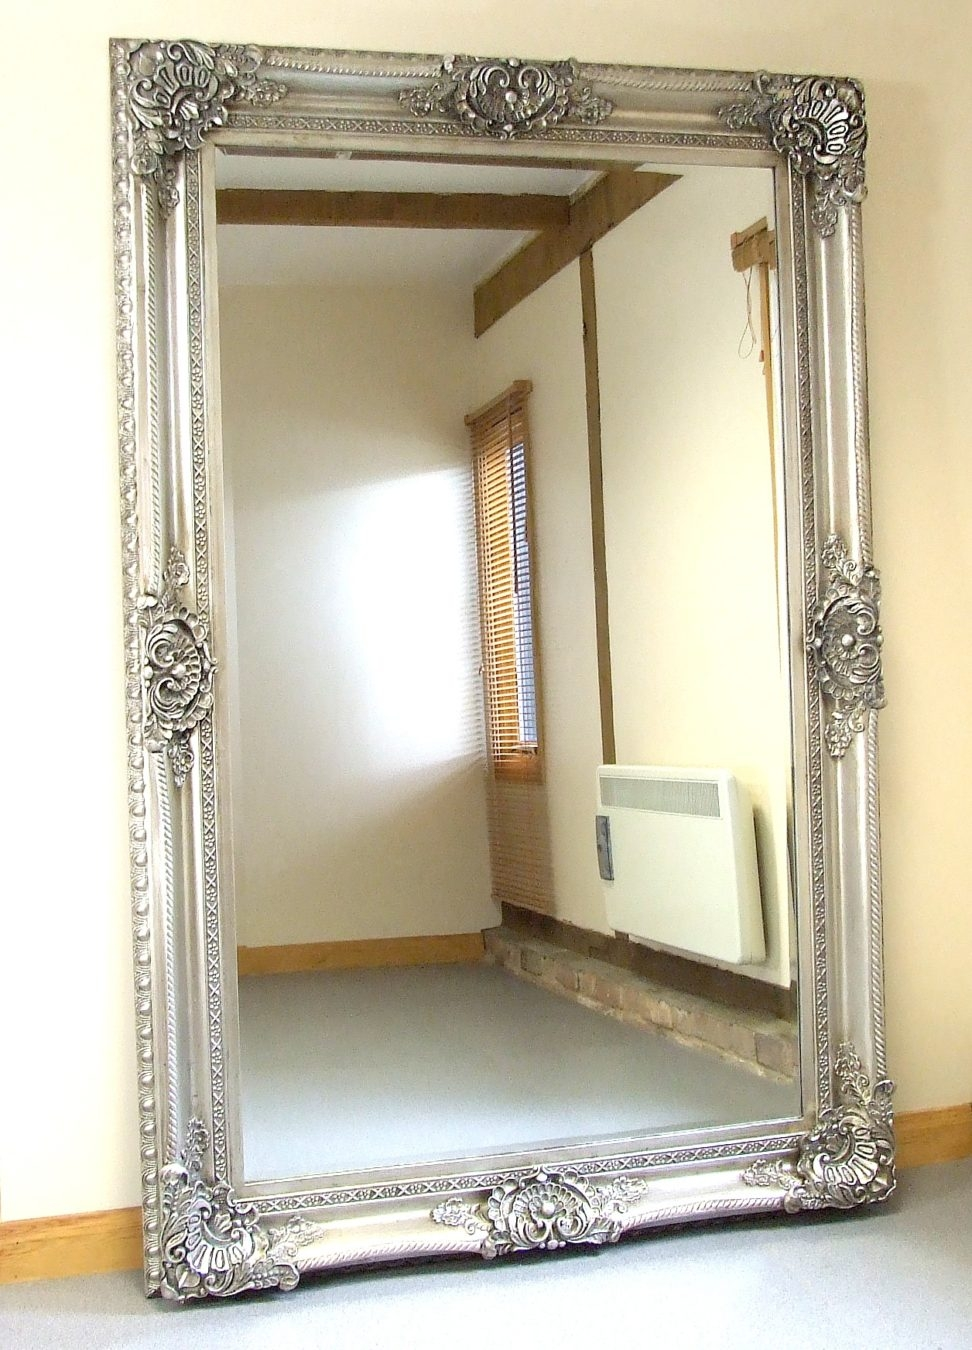 Large Wall Mirrors Uk Huge Wall Mirrors Oversized Rustic Wall With Massive Wall Mirrors (Image 13 of 15)